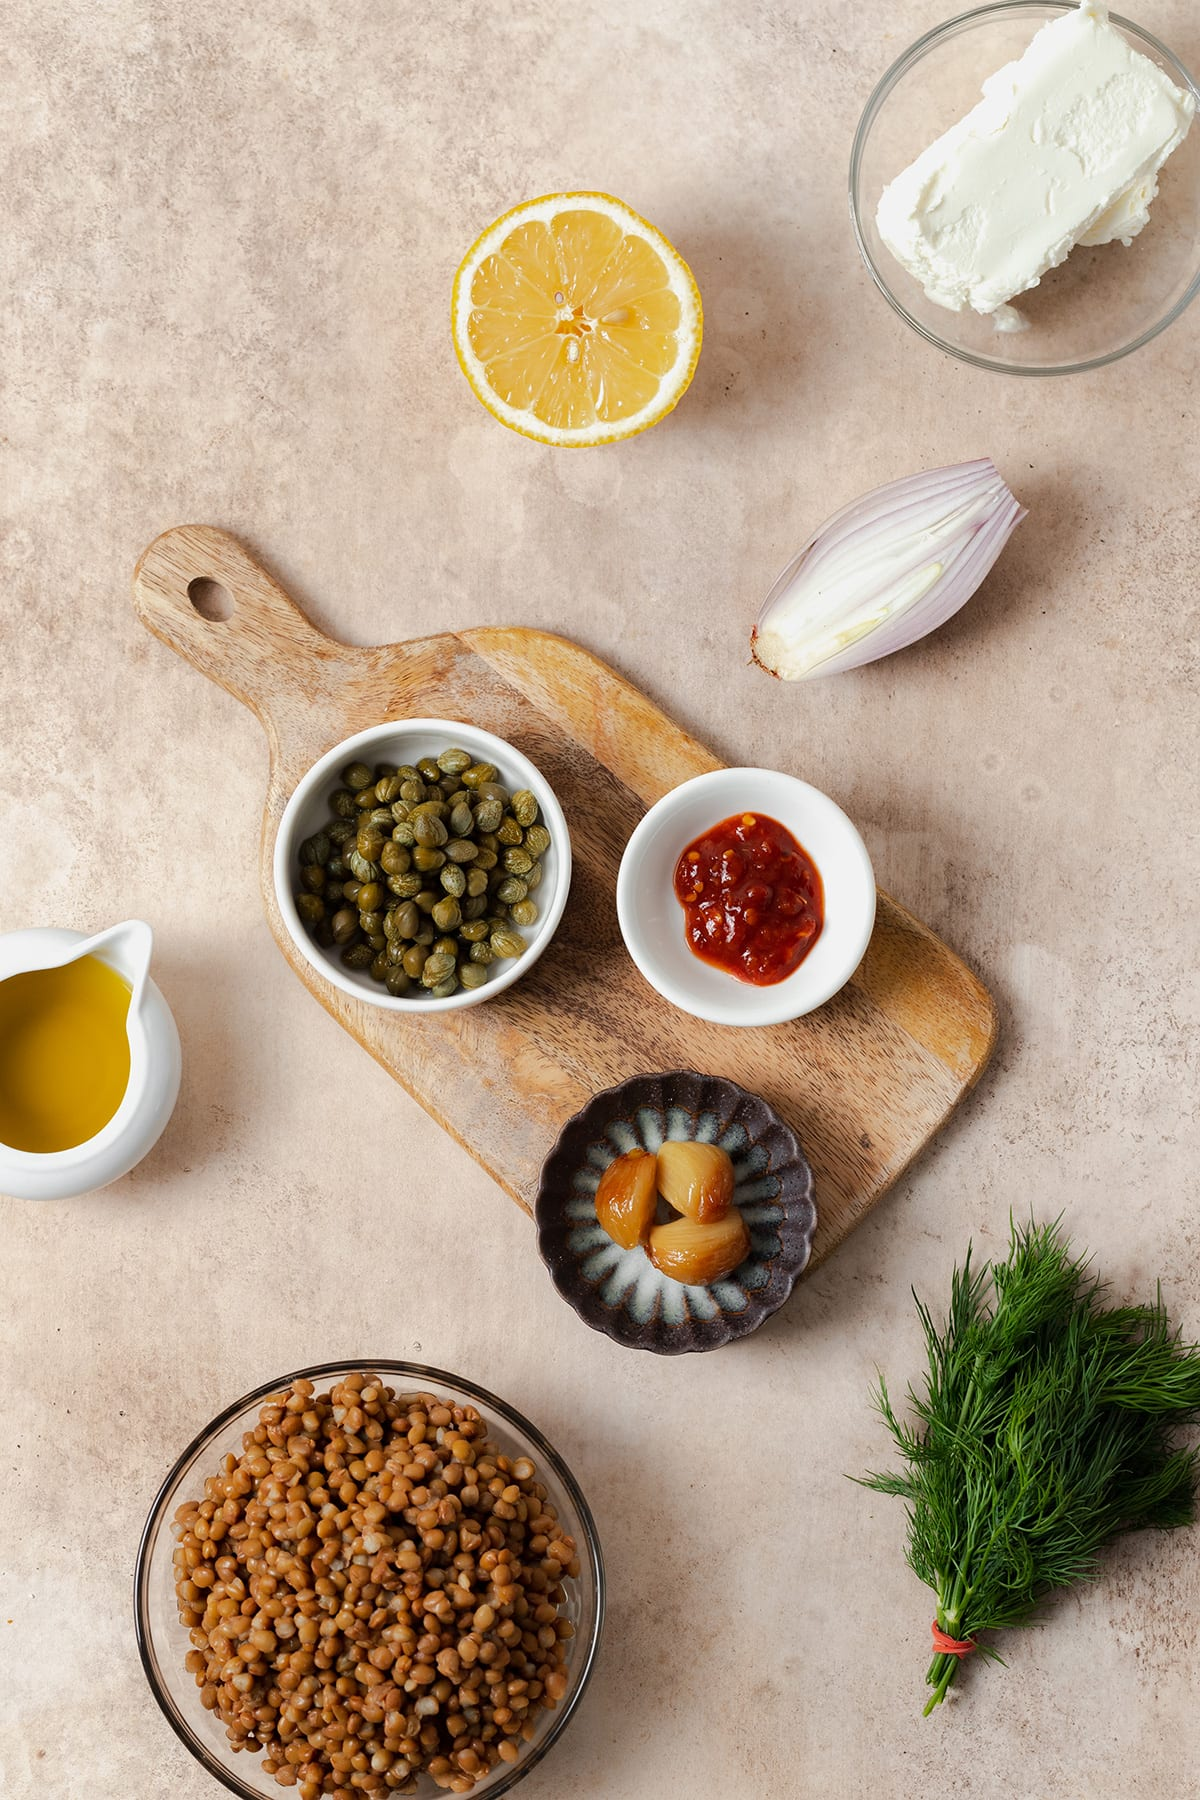 Ingredients laid out on a beige background. Cooked brown lentils, capers, olive oil, half a lemon, a block of soft goat cheese, half a shallot, a bunch of fresh dill, roasted garlic, and garlic chili sauce.